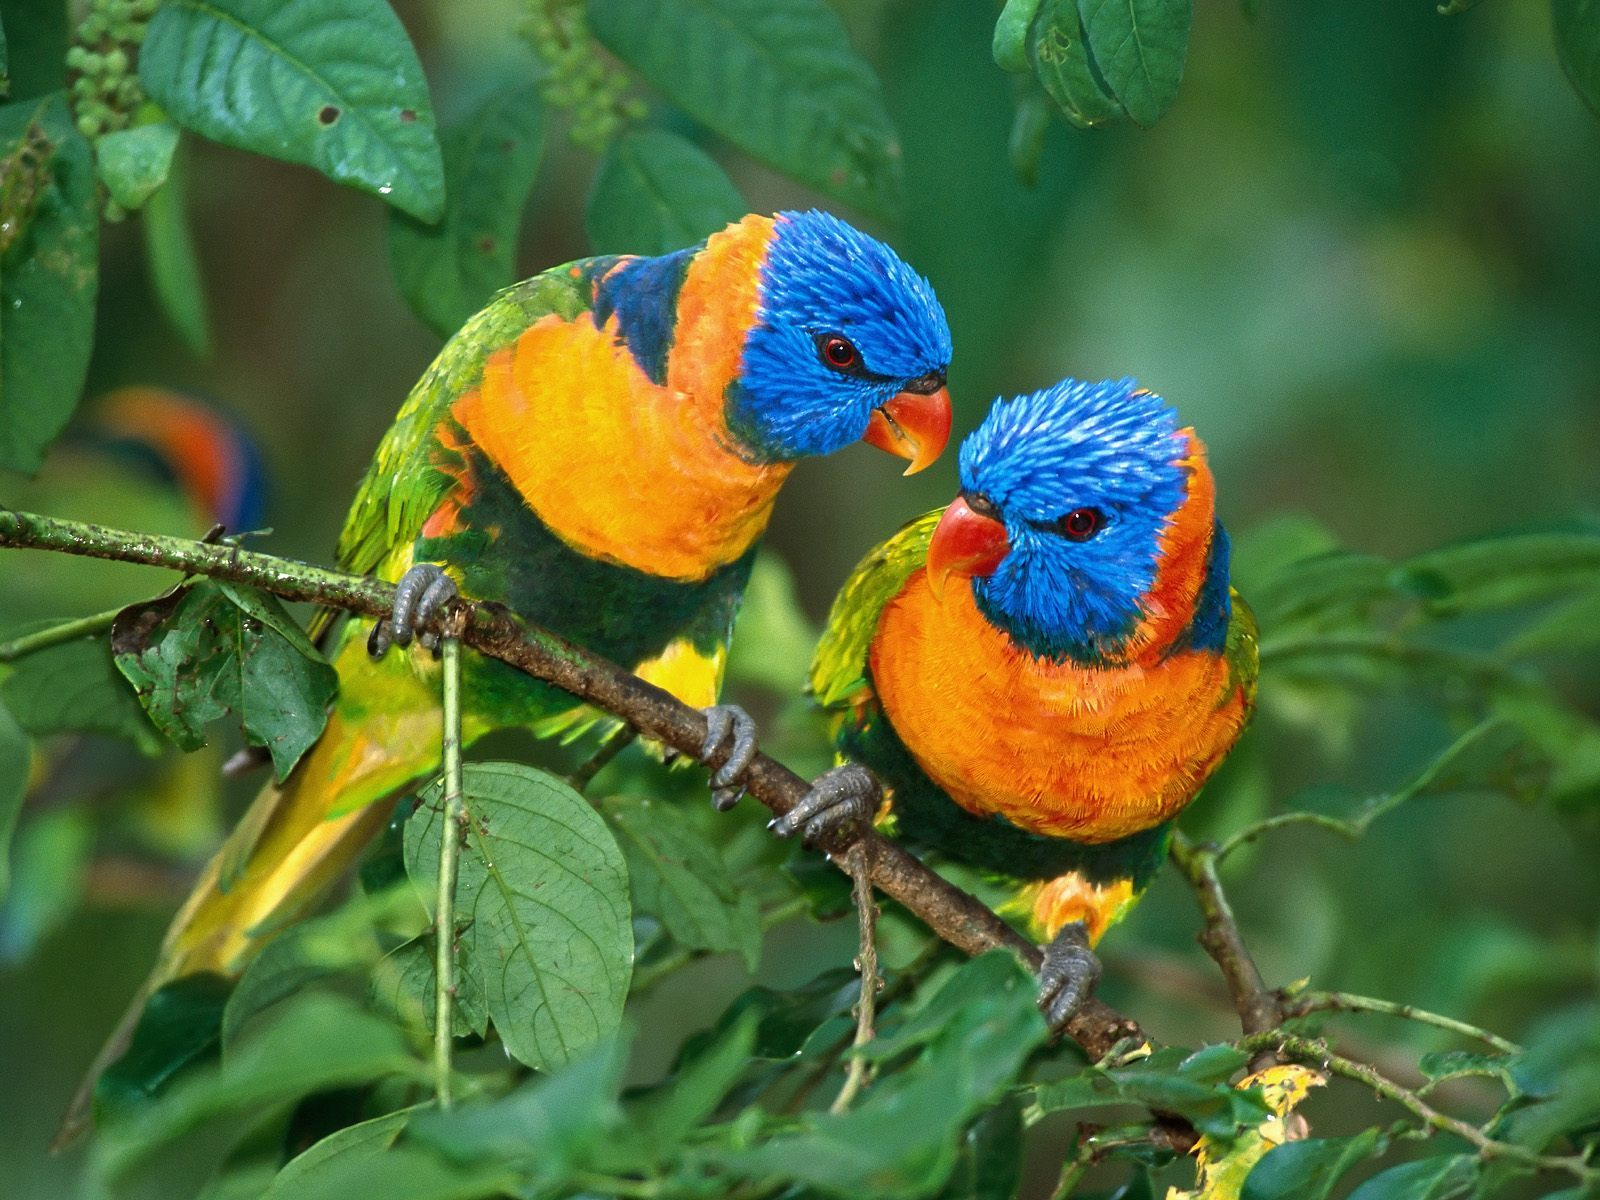 19088 download wallpaper Animals, Birds, Parrots screensavers and pictures for free